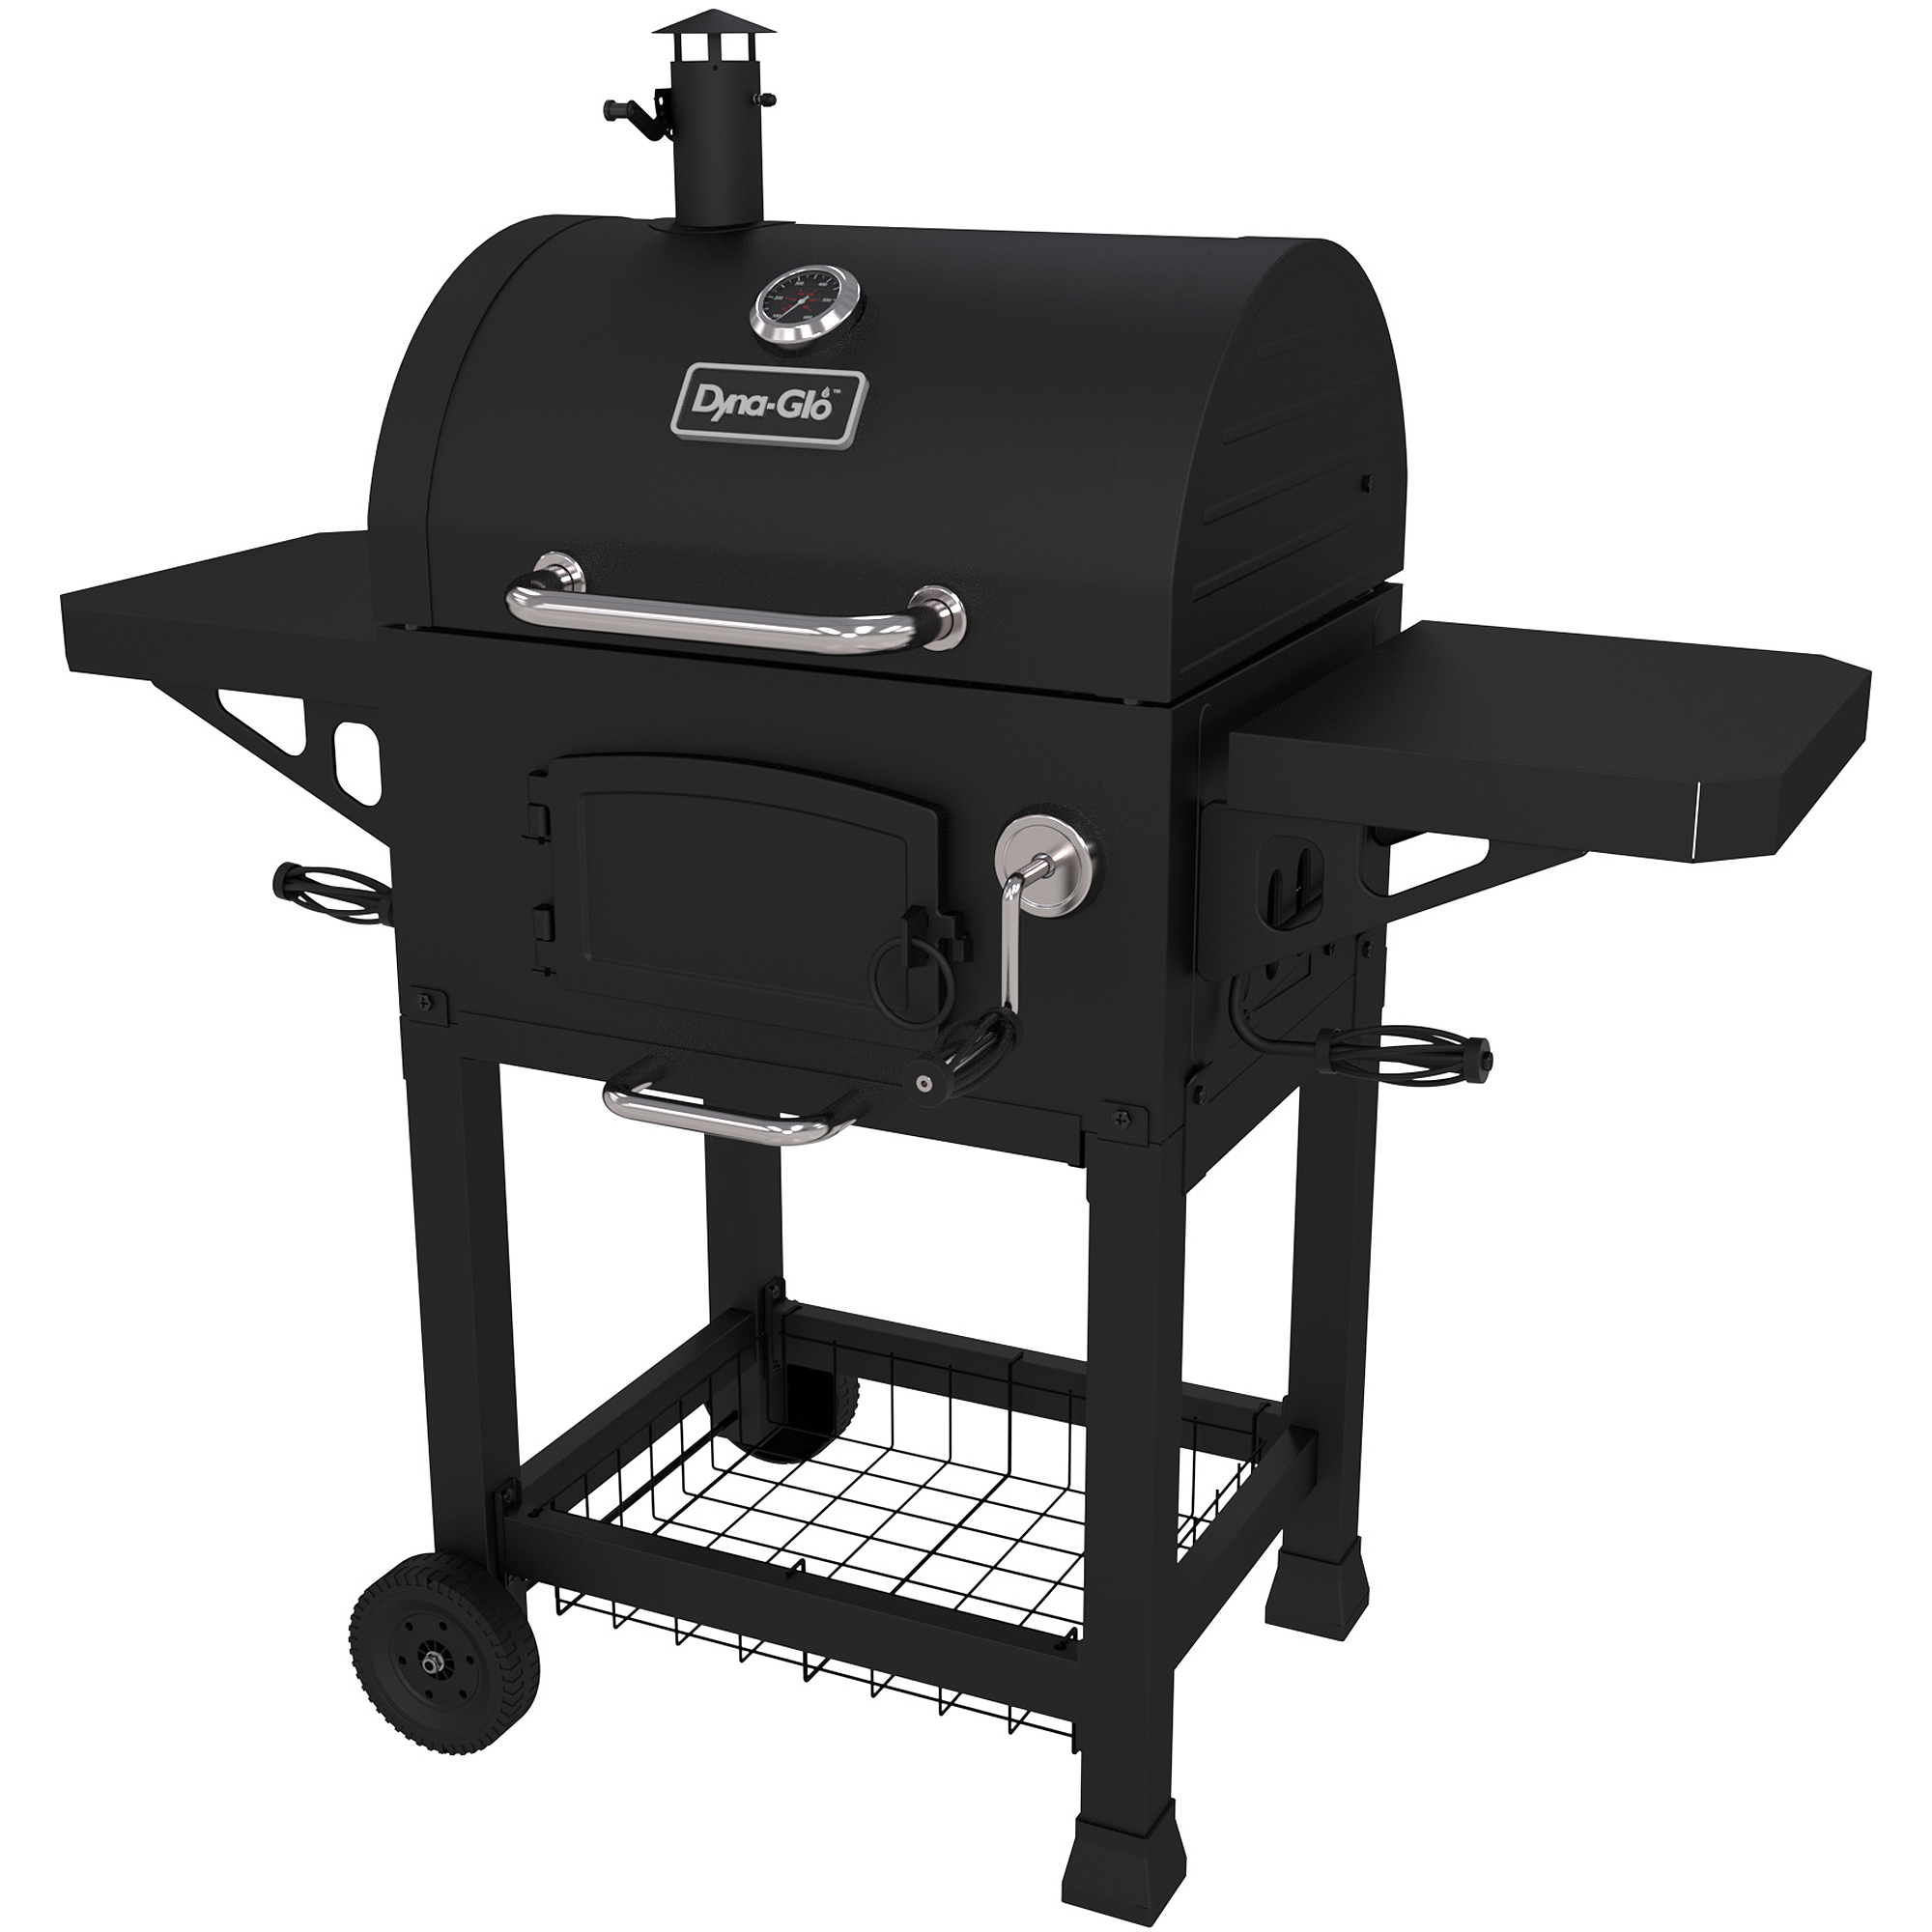 Dyna-Glo DGN405DNC-D Heavy-Duty Charcoal Grill by GHP Group, Inc.